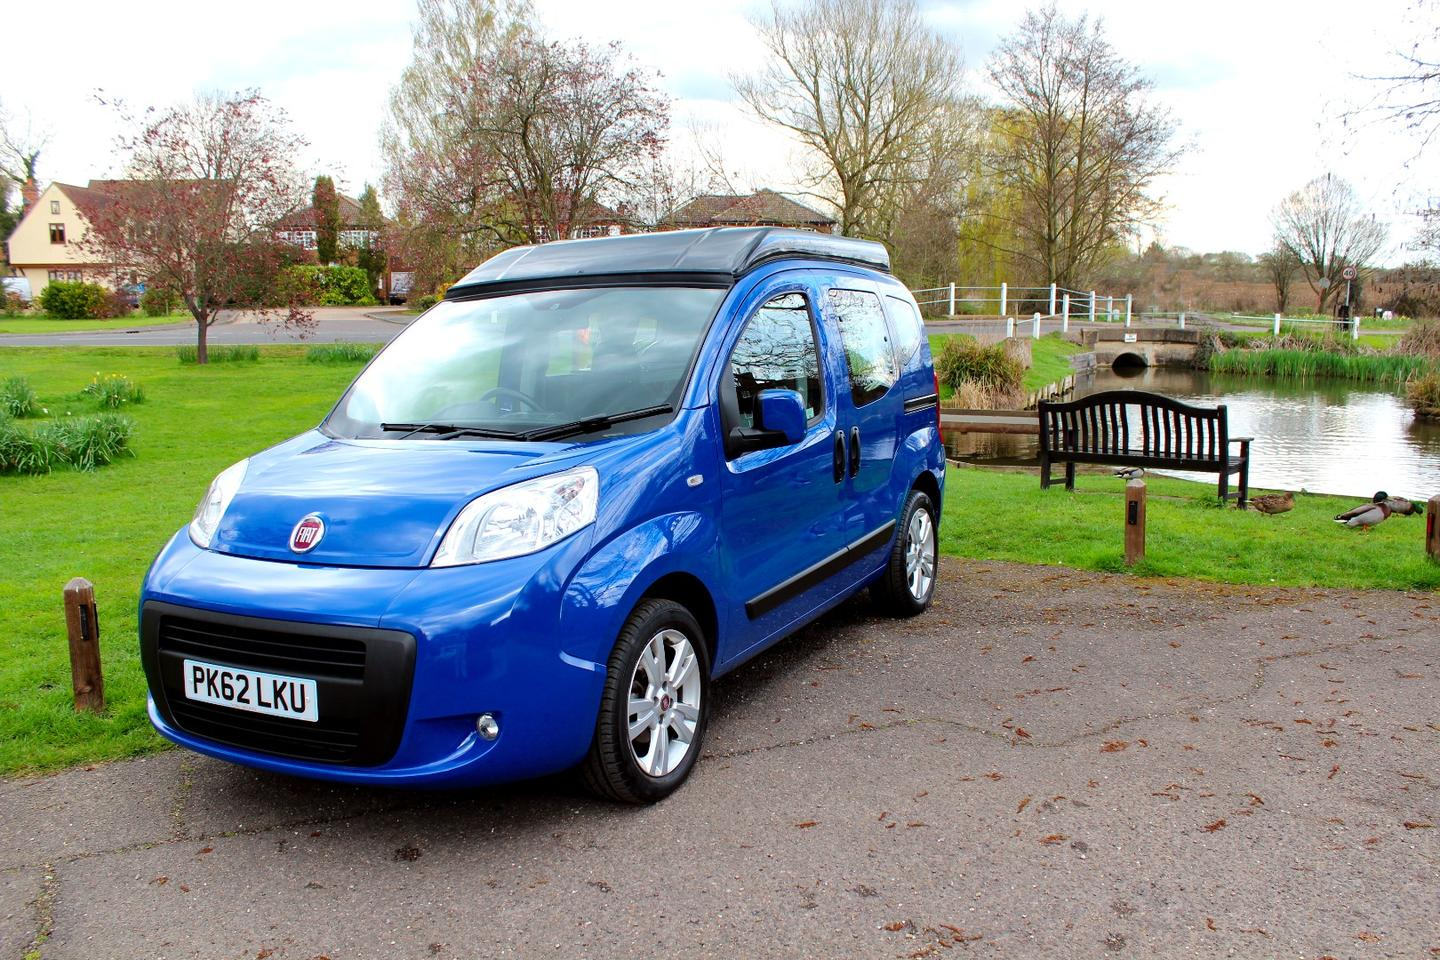 The Vikenze II is built on the Fiat Qubo